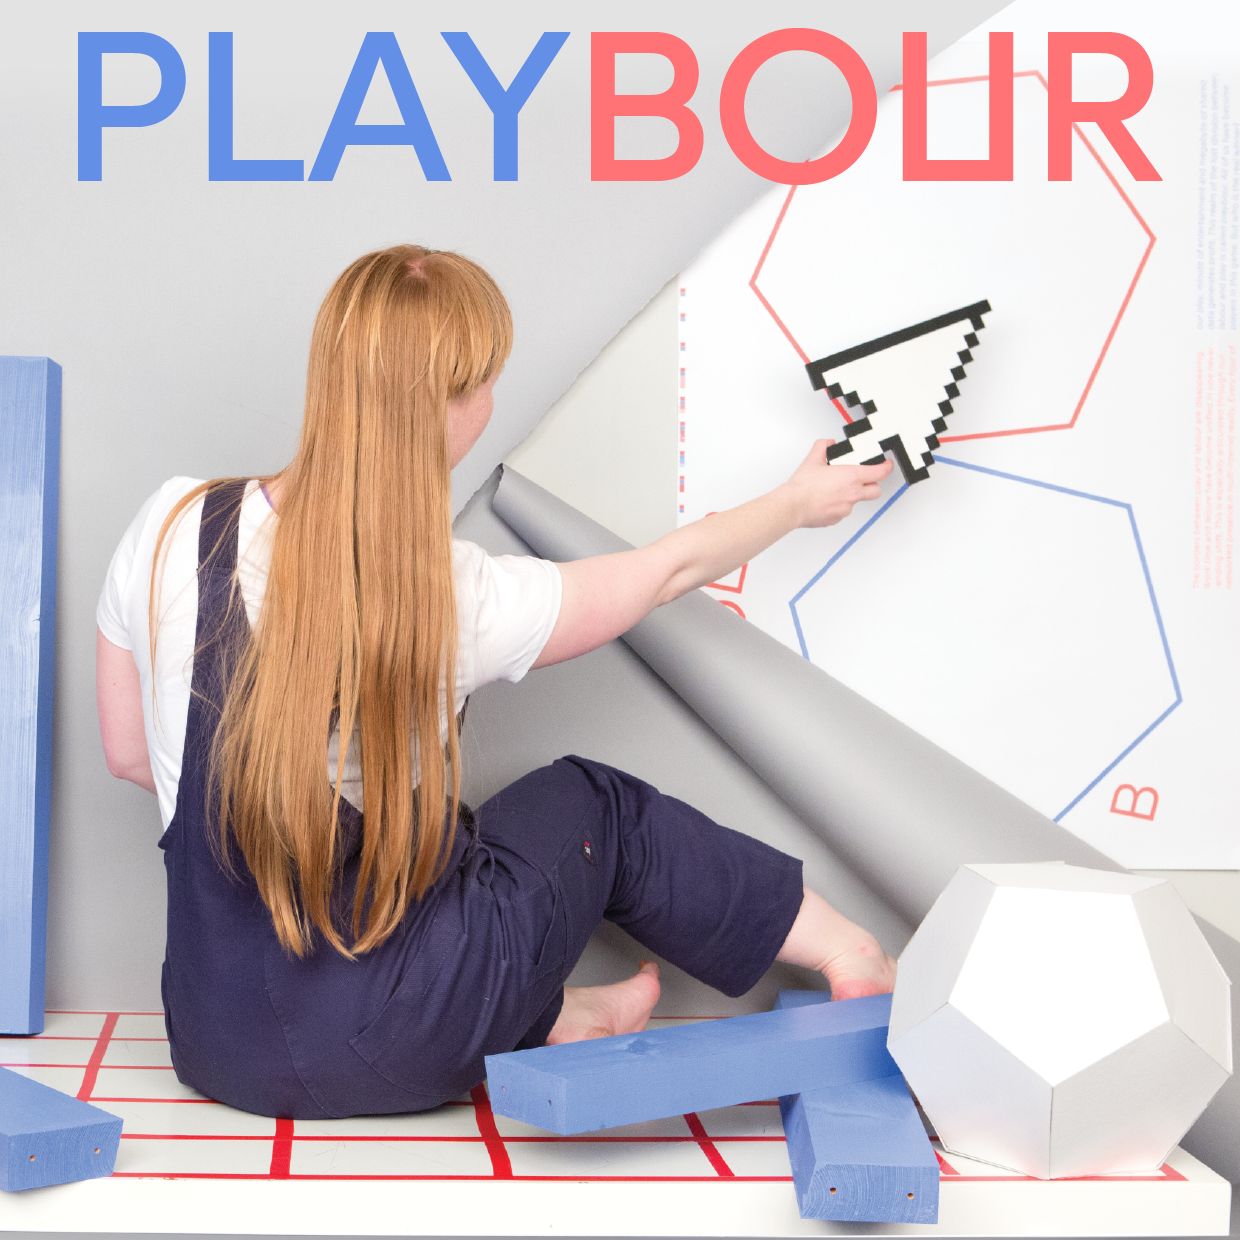 Playbour-ventolin-cover-B.png